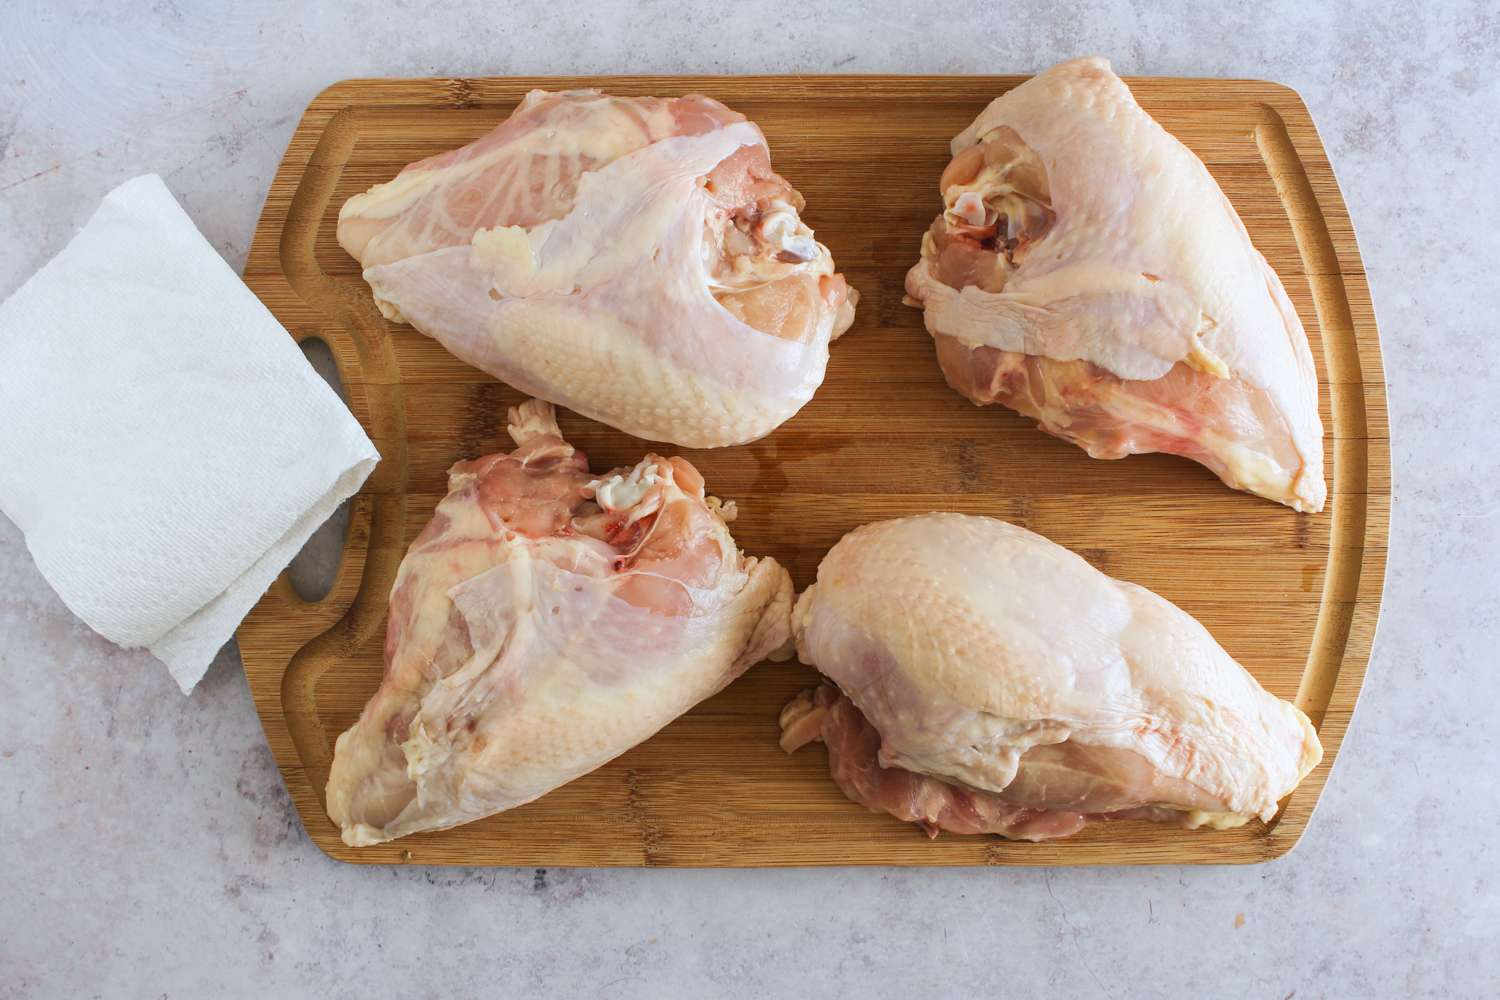 Bone-in chicken breasts pat dry with a paper towel on a cutting board